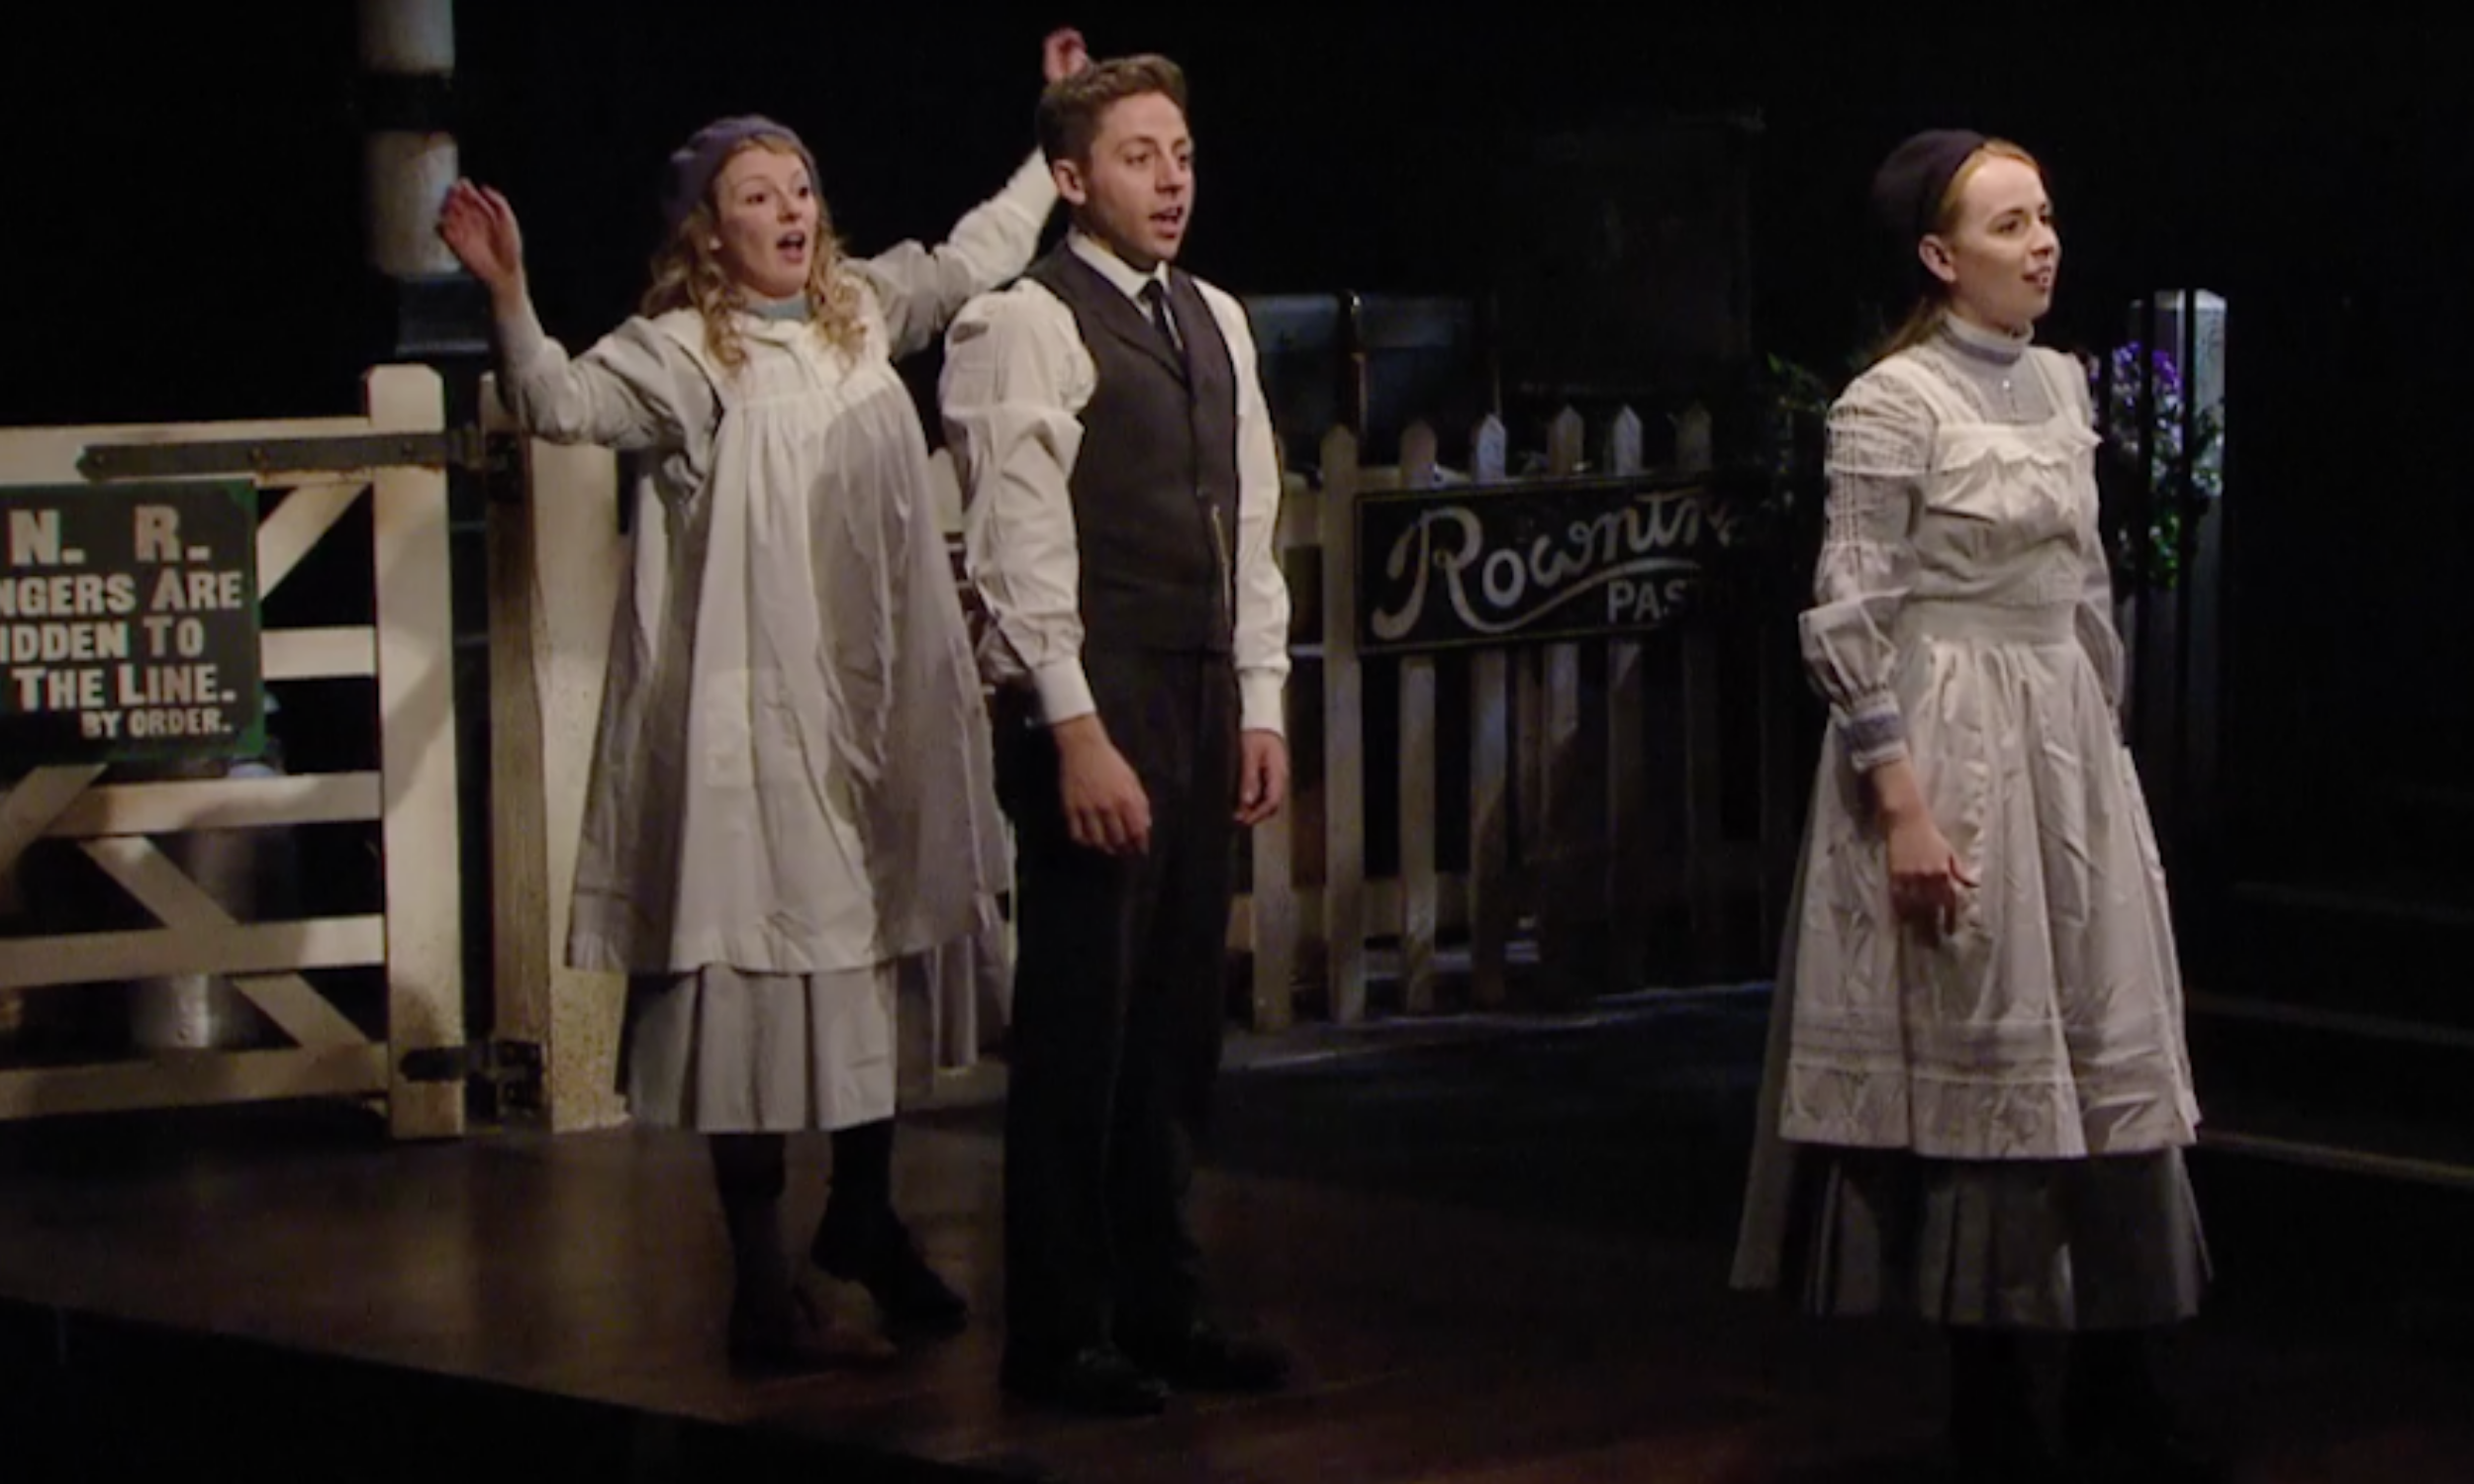 The cast of The Railway Children